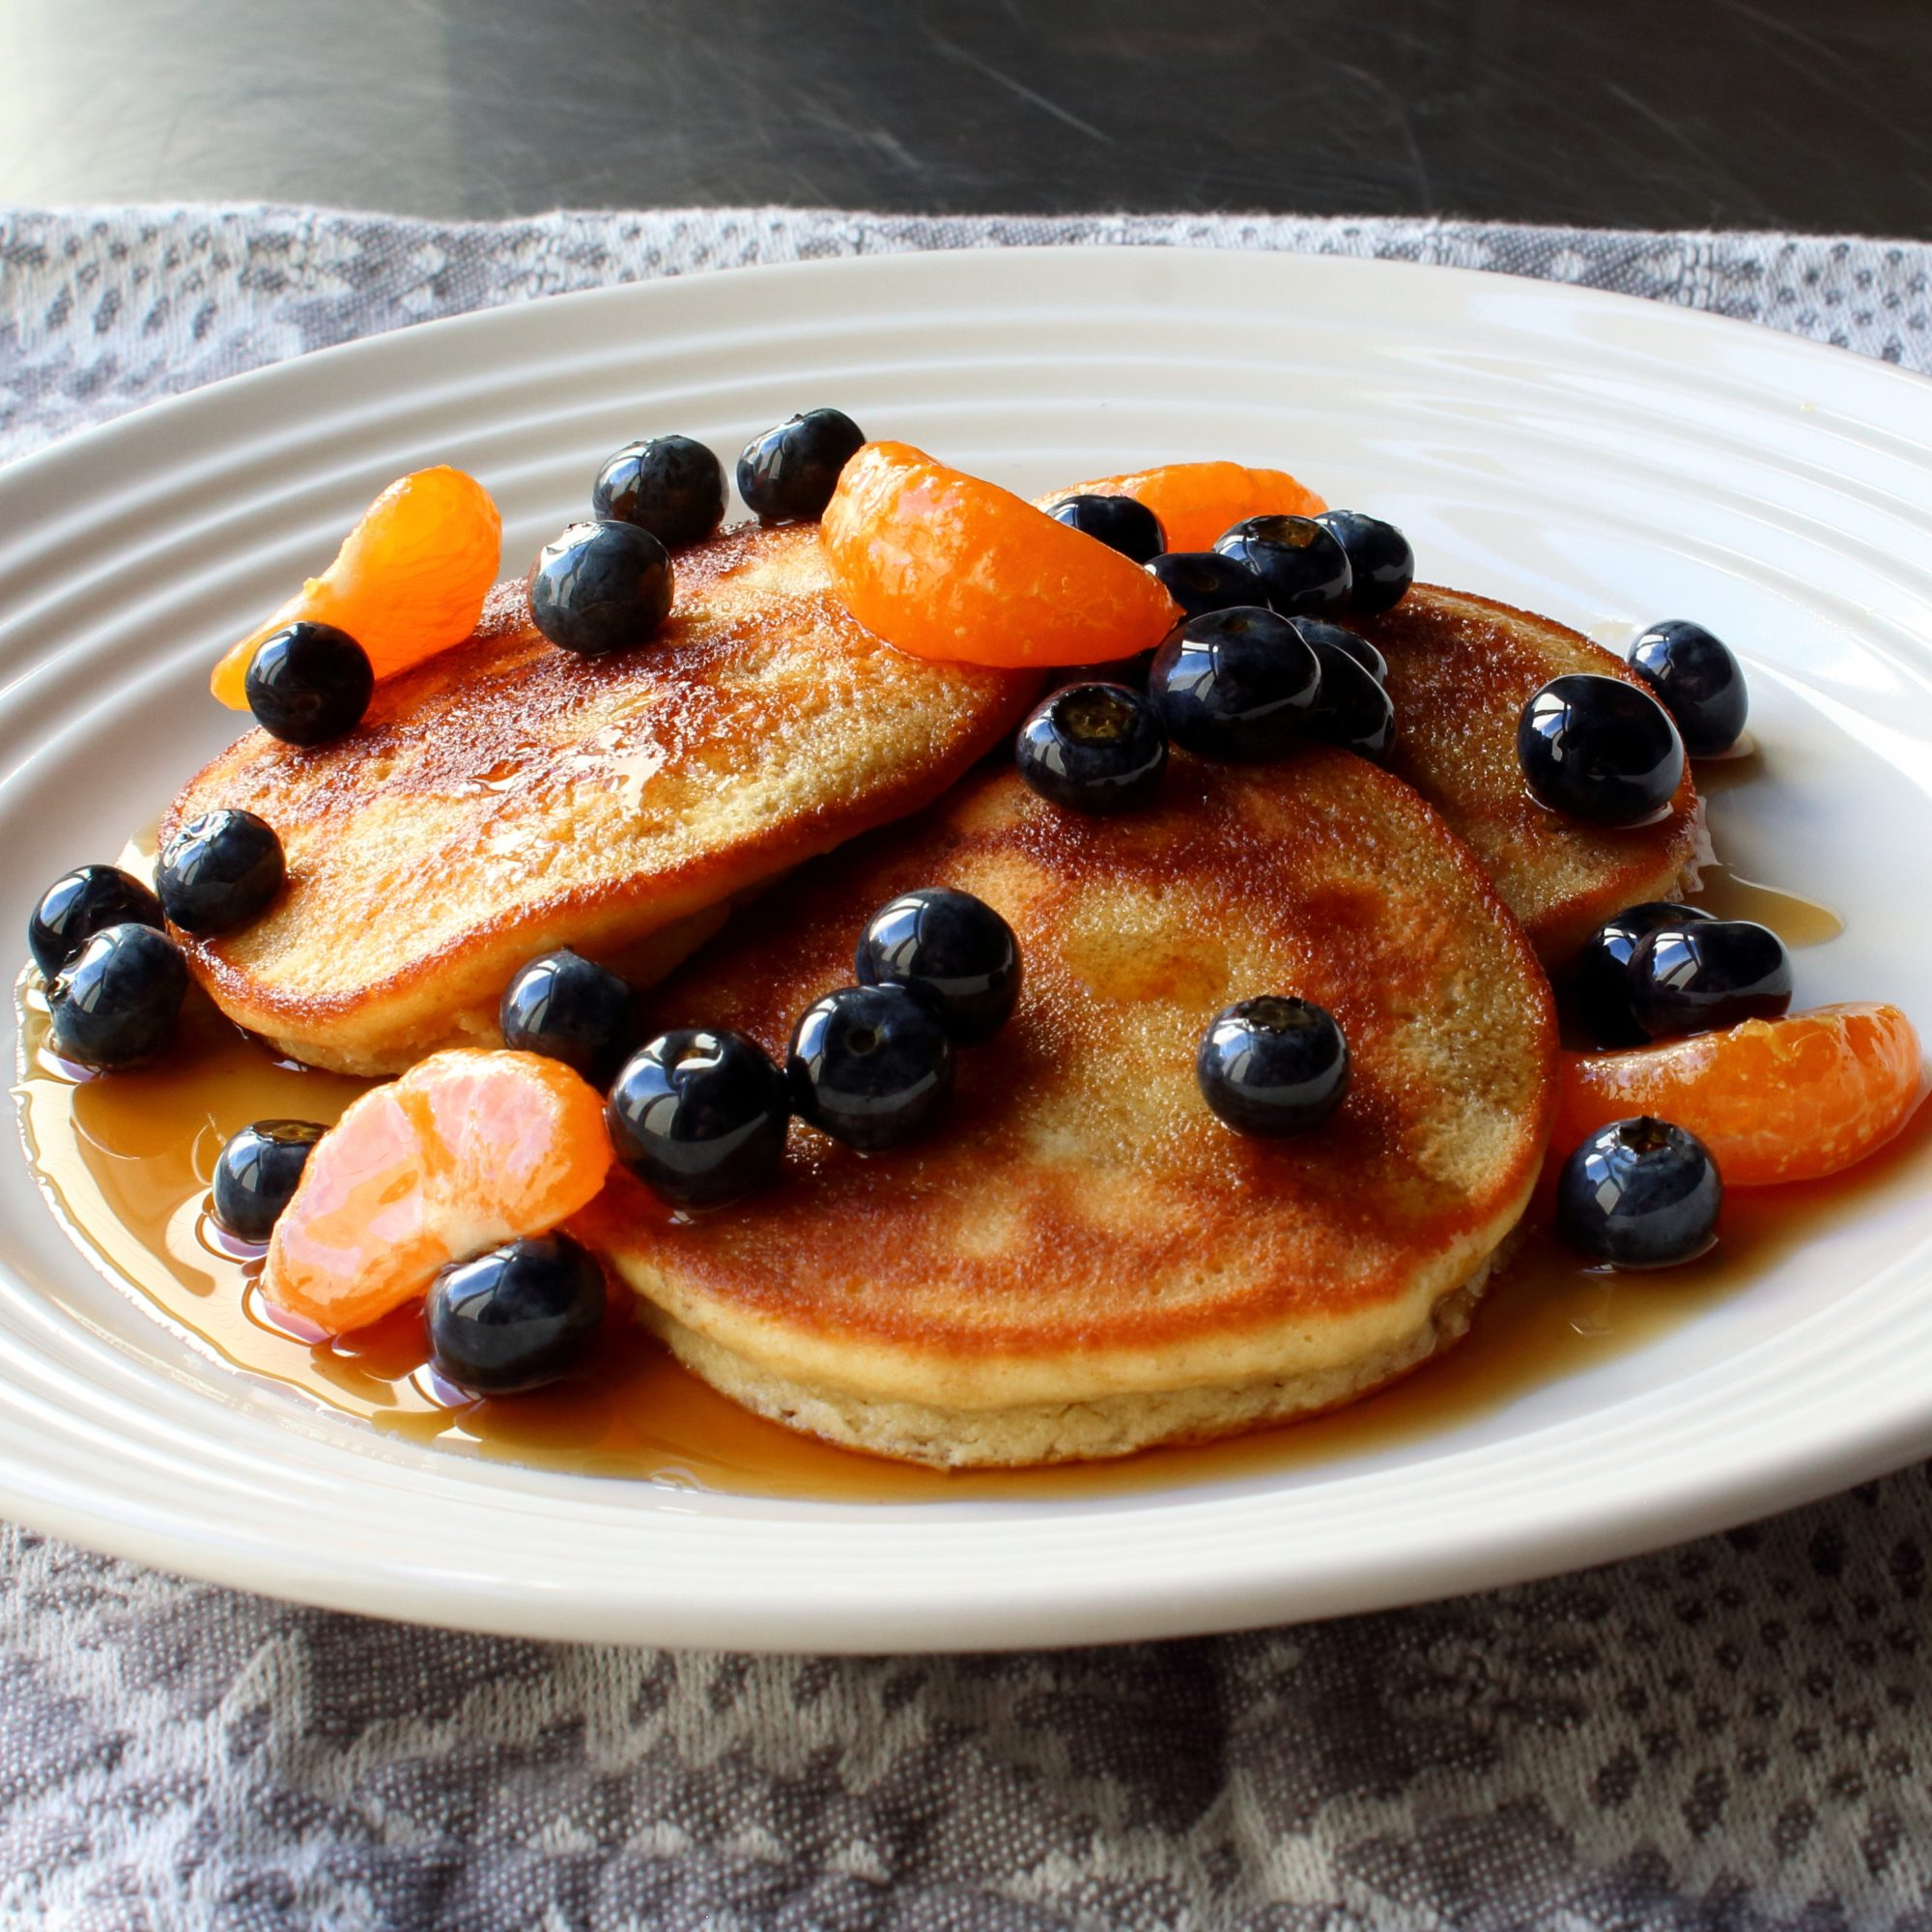 Almond Meal Pancakes with blueberries and mandarin oranges on a white plate